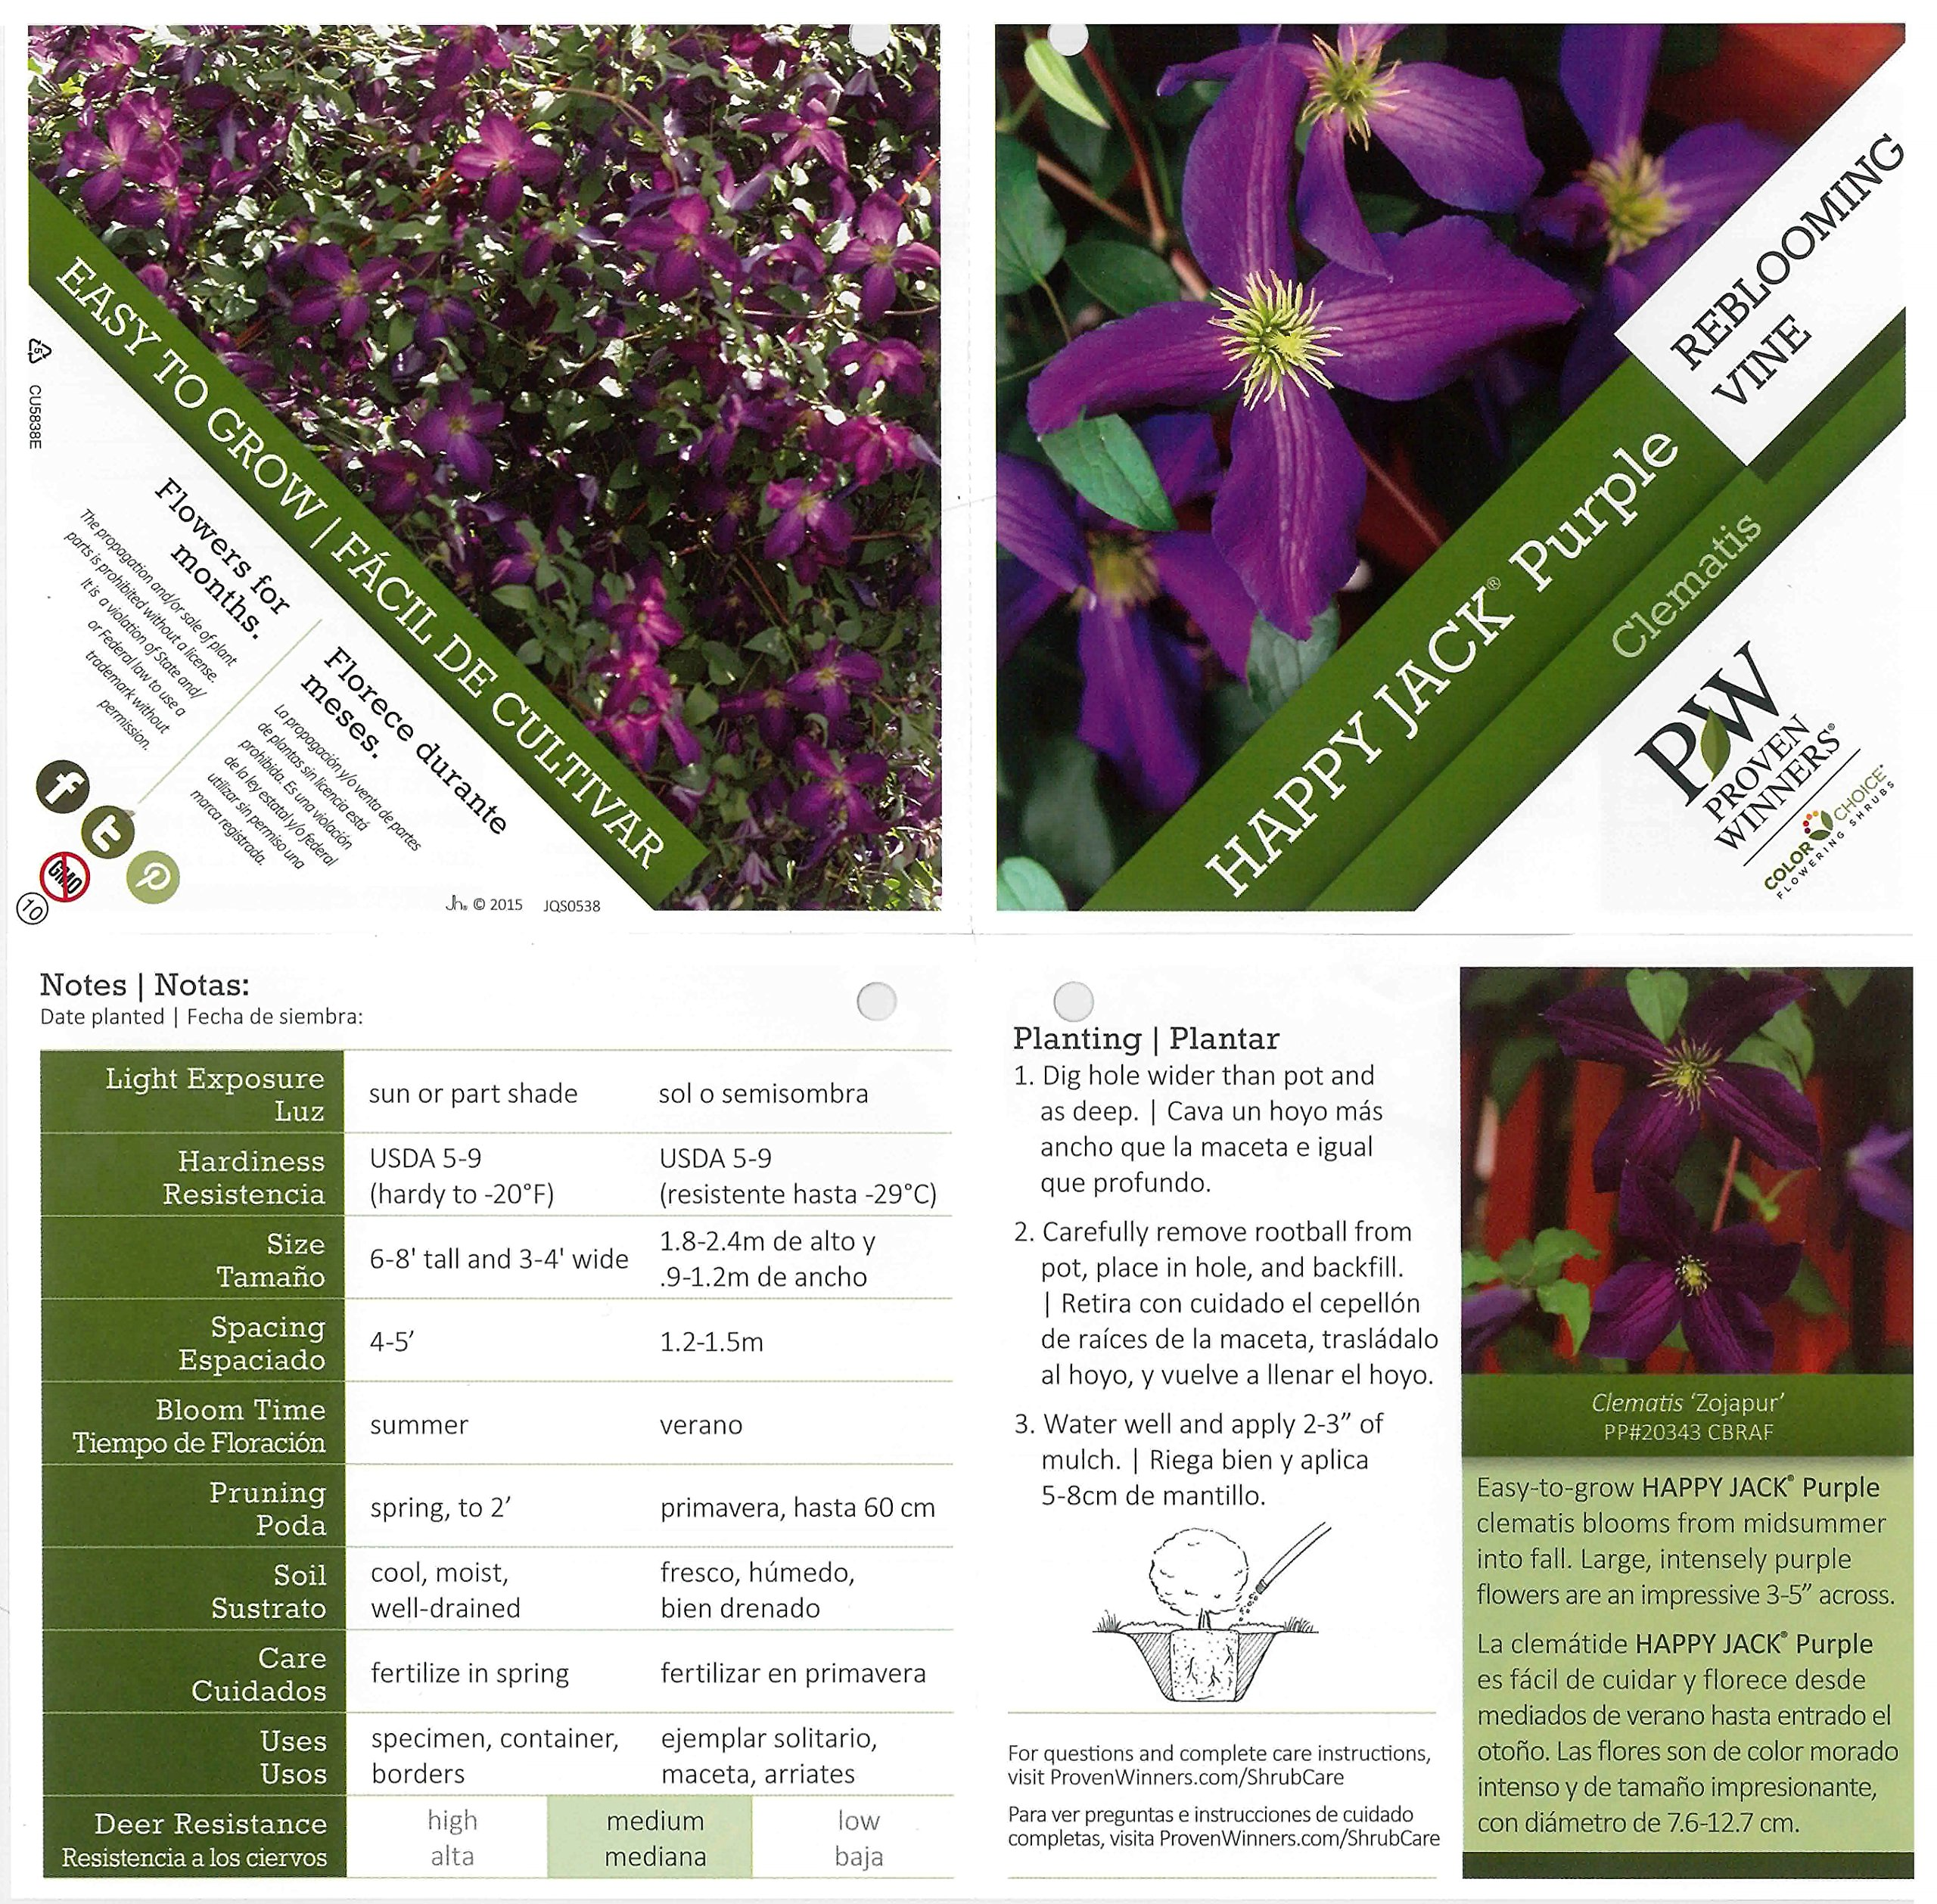 Happy Jack Purple (Clematis) Live Shrub, Purple Flowers,1 Gallon by Proven Winners (Image #3)